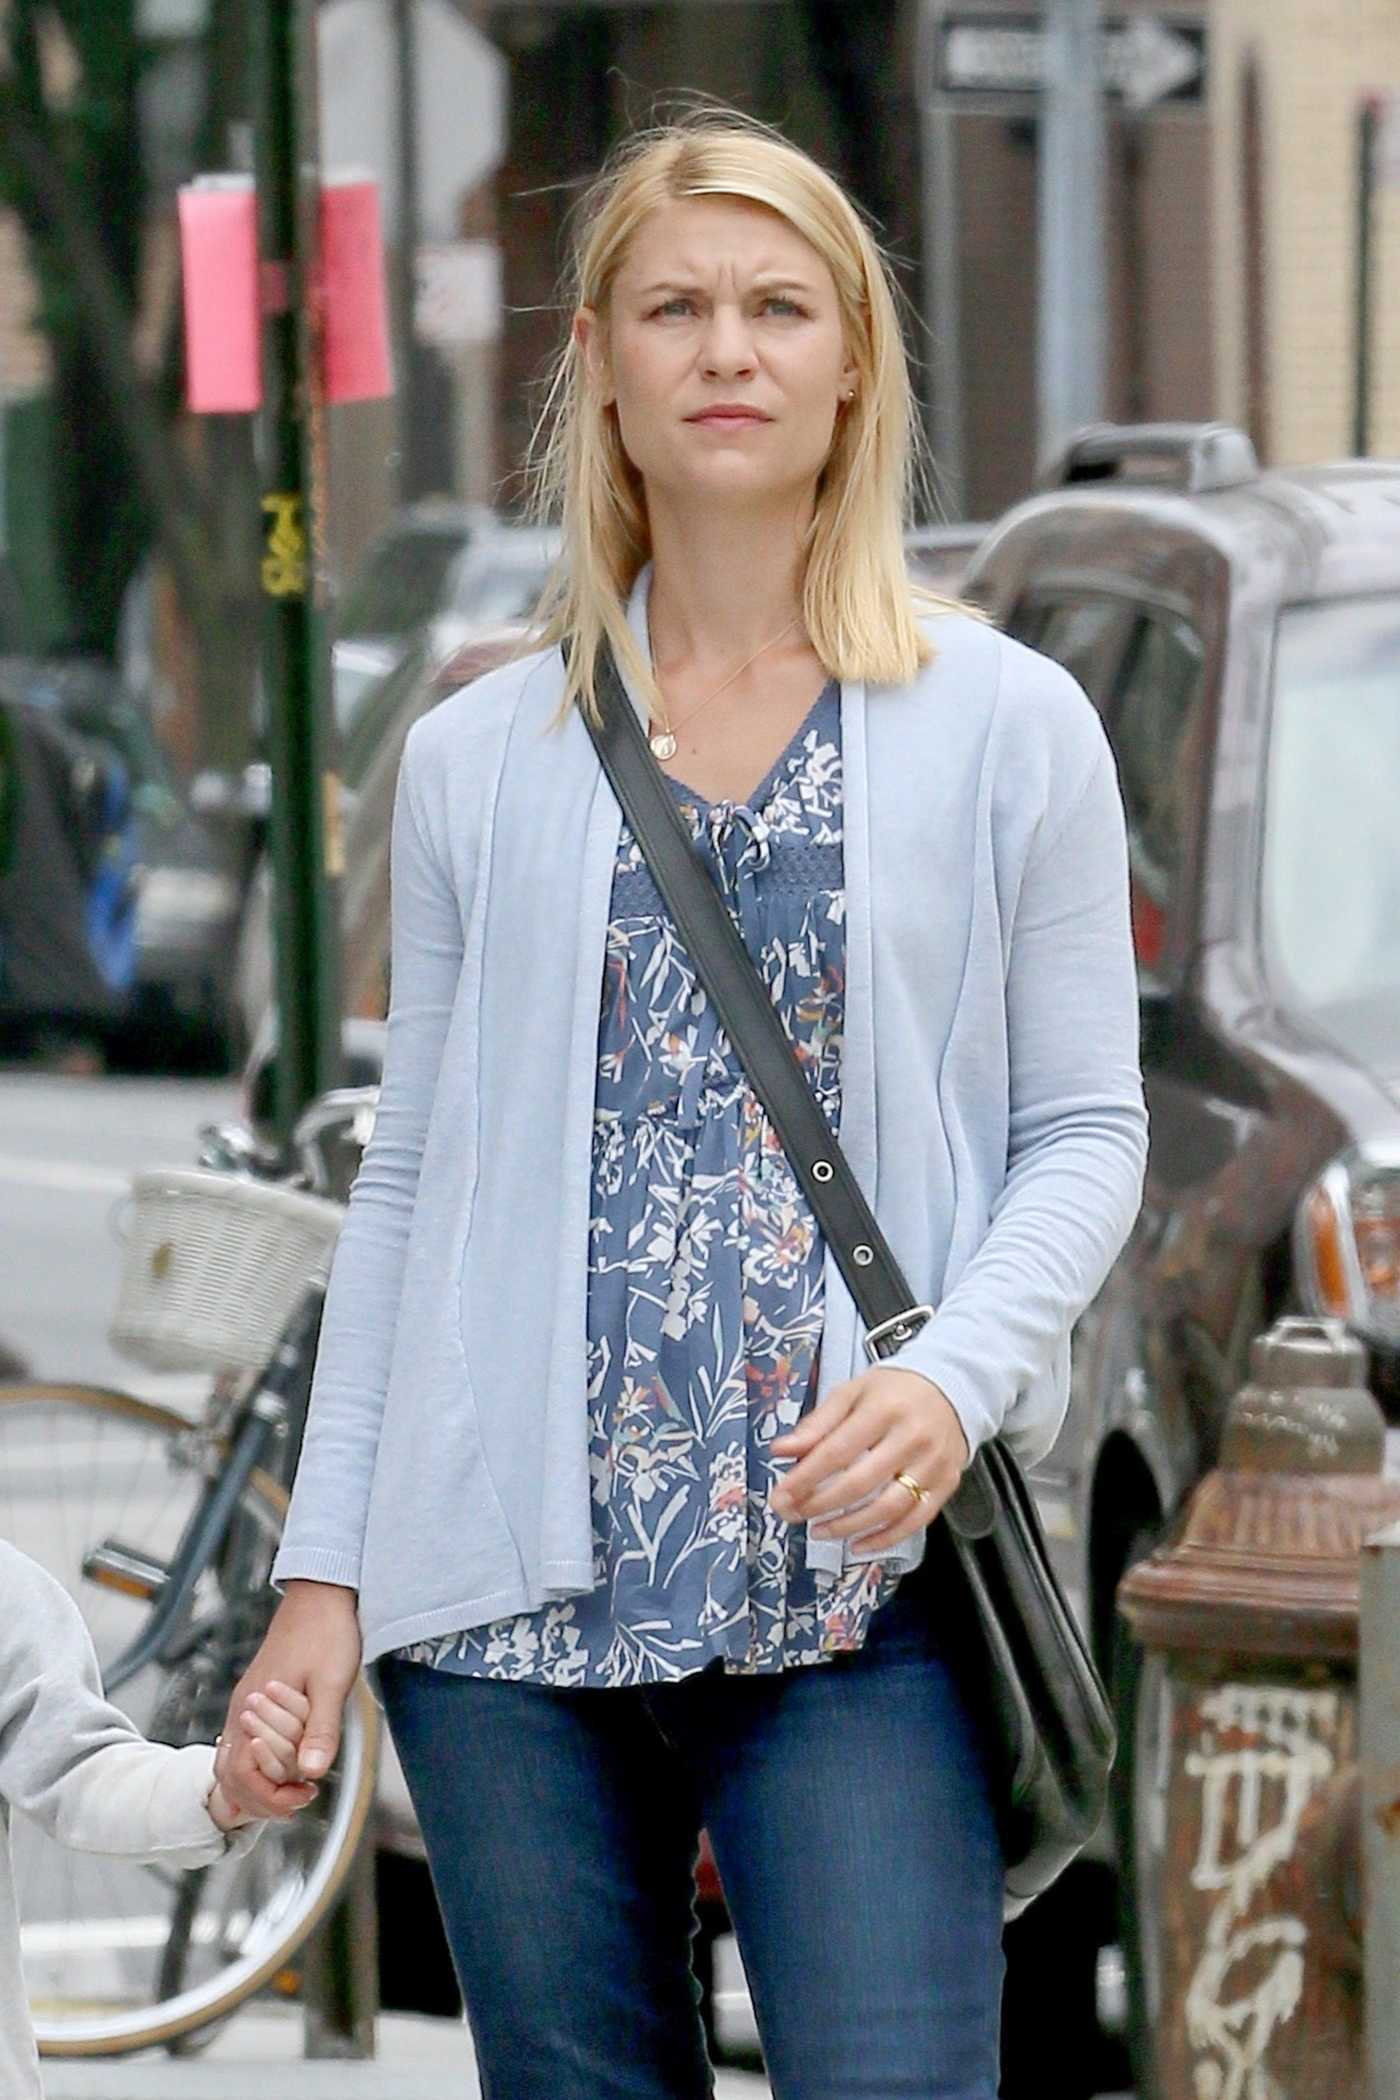 Claire Danes on the Set of A Kid Like Jake in Brooklyn, NYC 06/22/2017